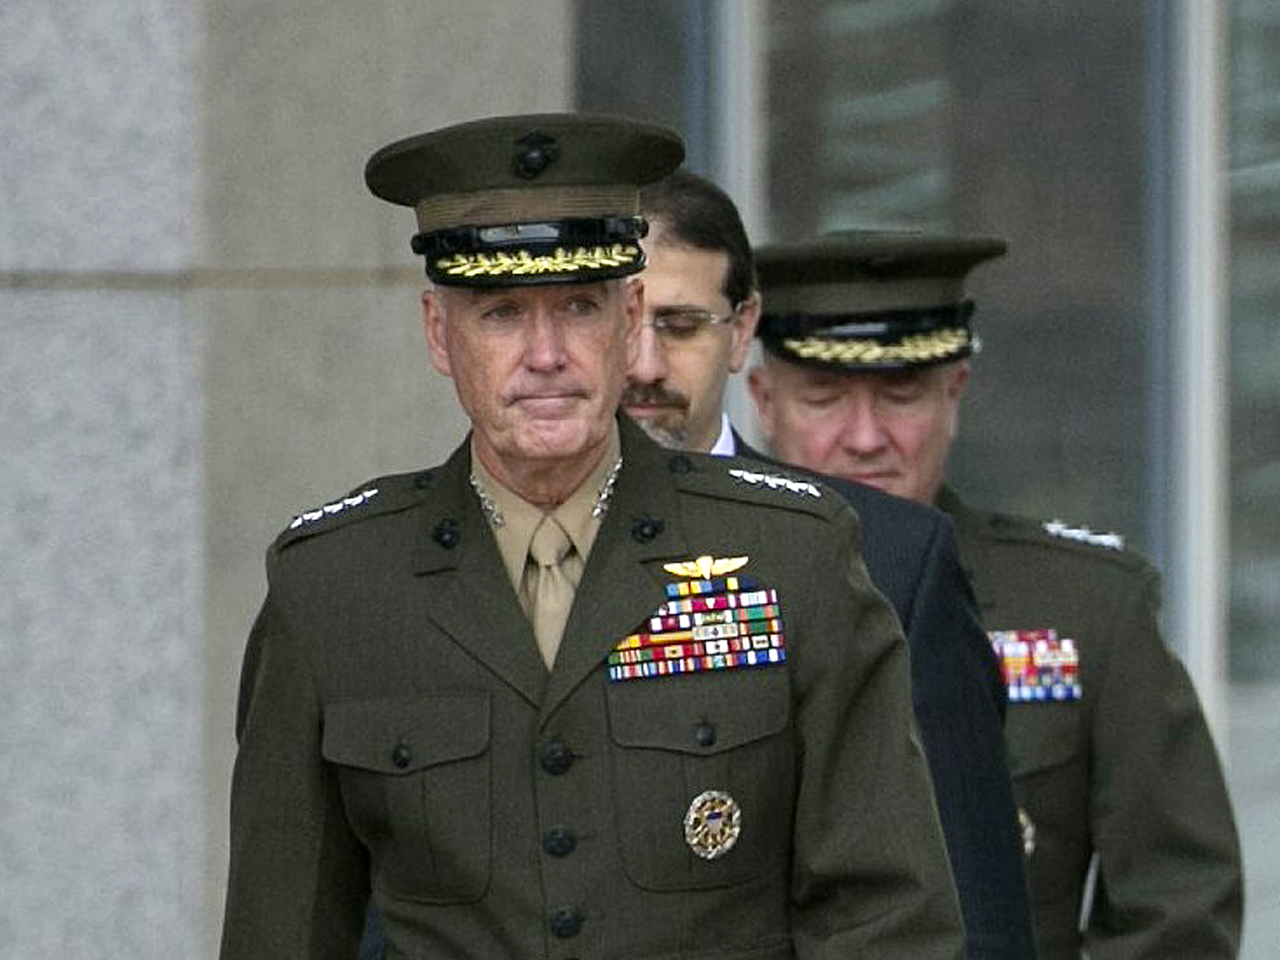 joint chiefs chairman general joseph dunford says russian airstrikes